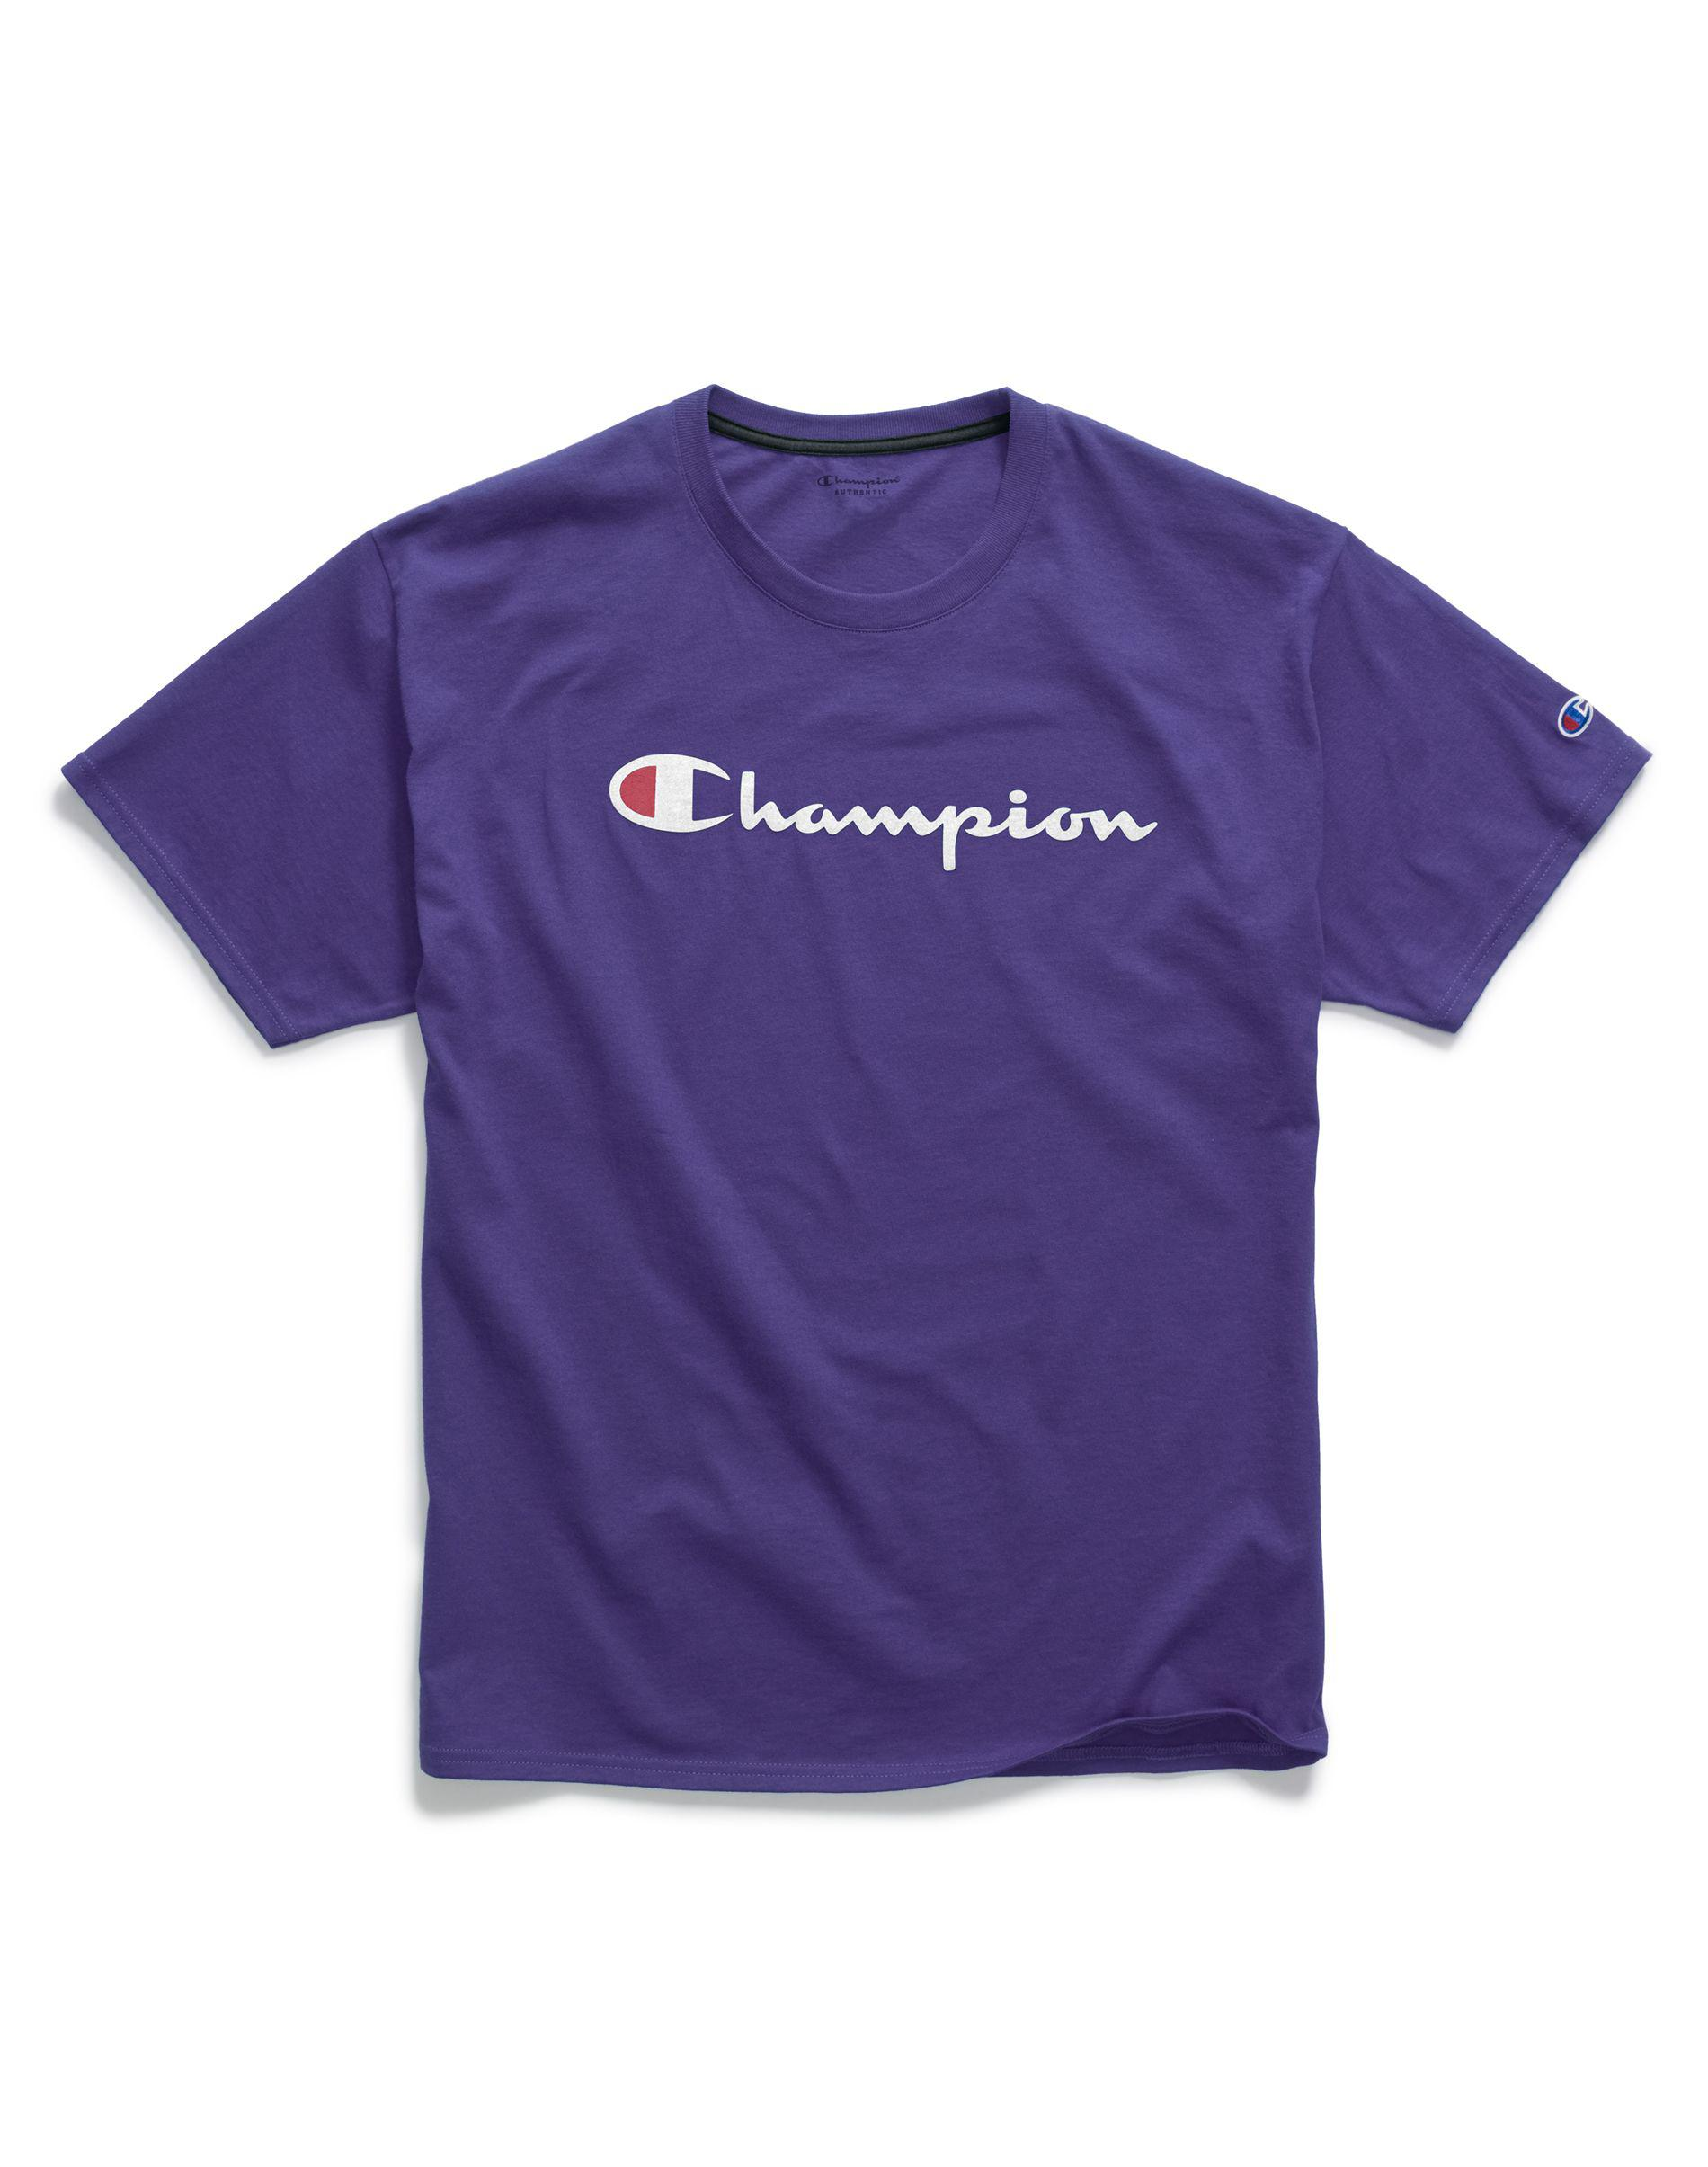 22c34255d7e2 Champion - Purple Graphic Jersey Tee, Script Logo for Men - Lyst. View  fullscreen